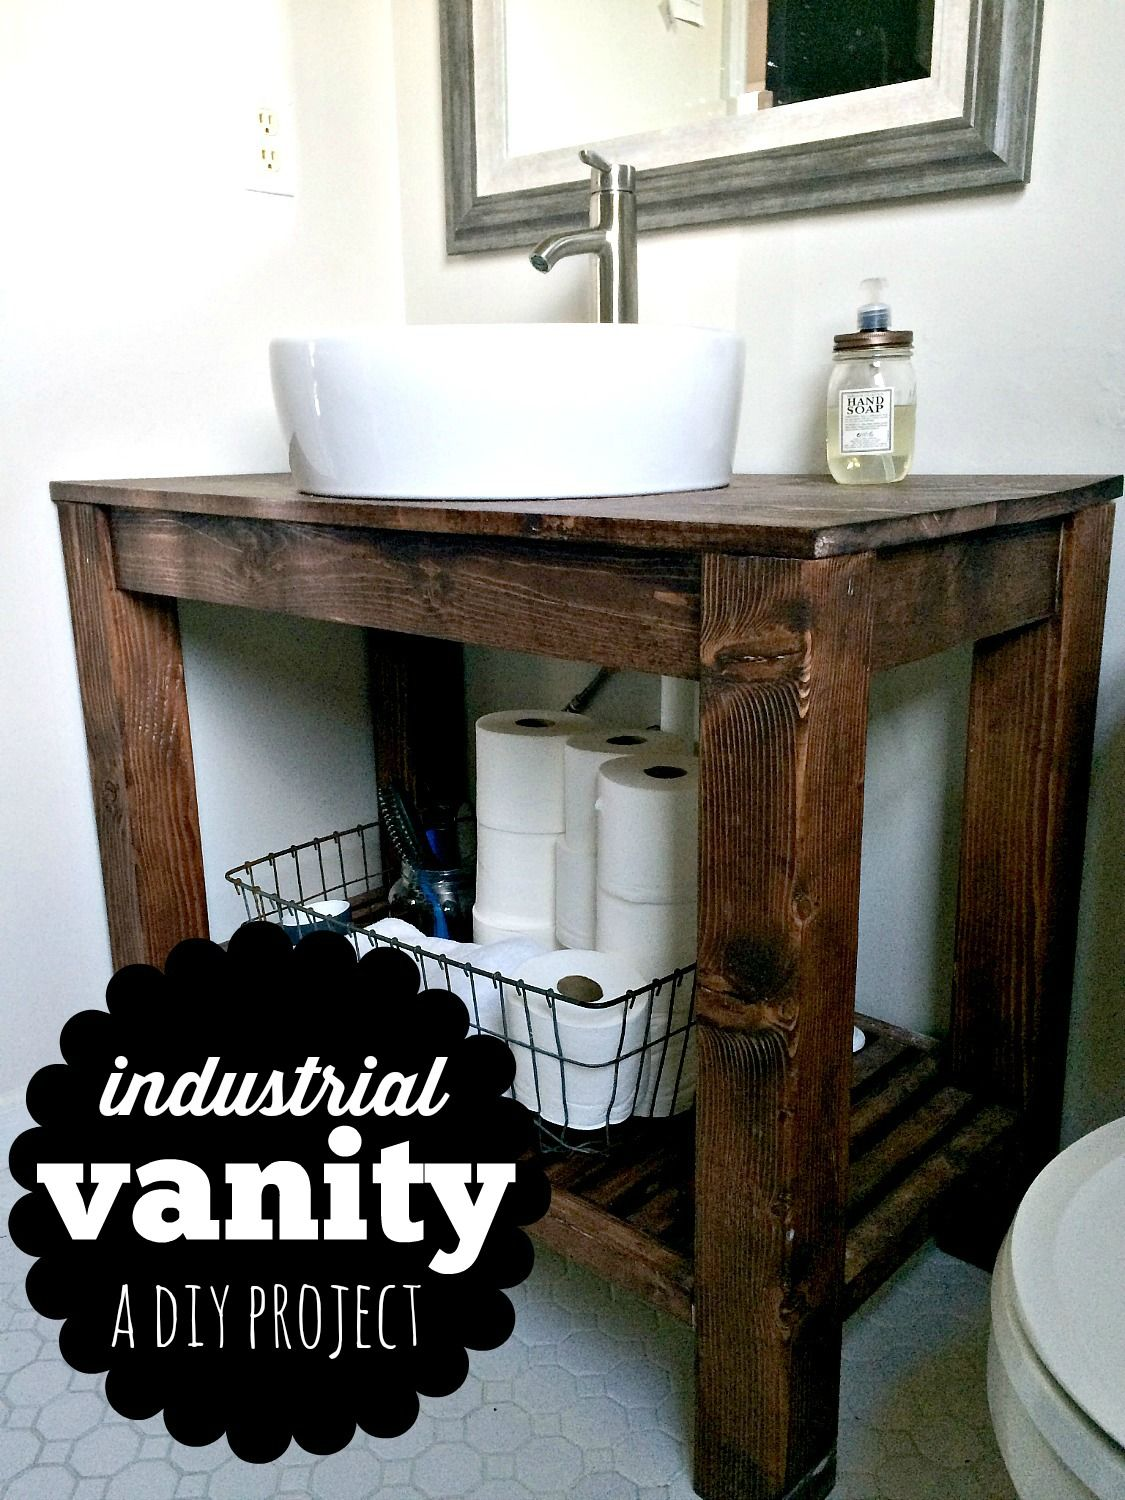 Bathroom Vanity Farmhouse diy farmhouse bathroom vanity | bathroom vanities, vanities and bath